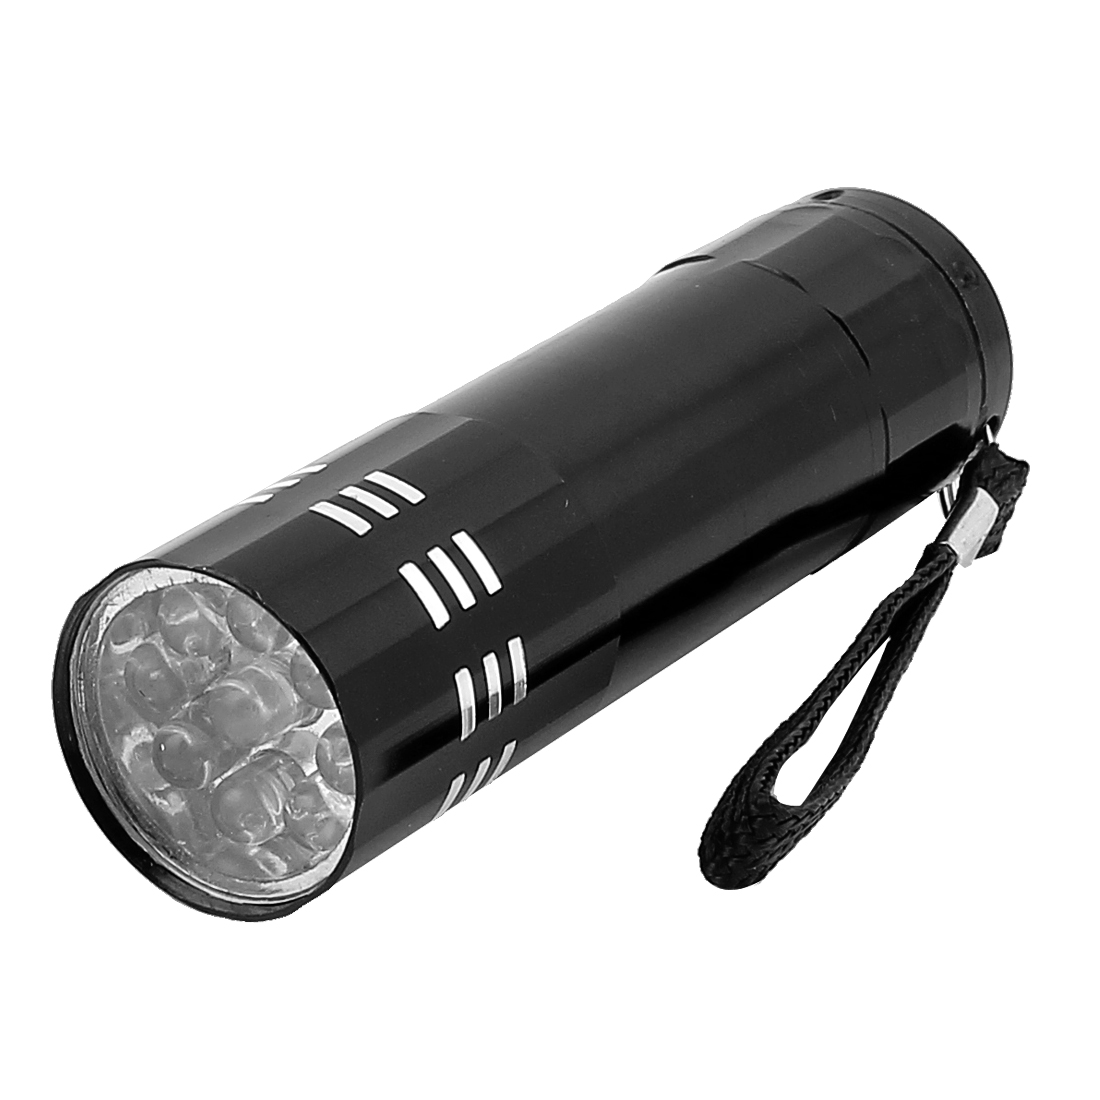 Outdoor Home Aluminium Alloy Shell 9-LED White Light Flashlight Torch Lamp by Unique-Bargains